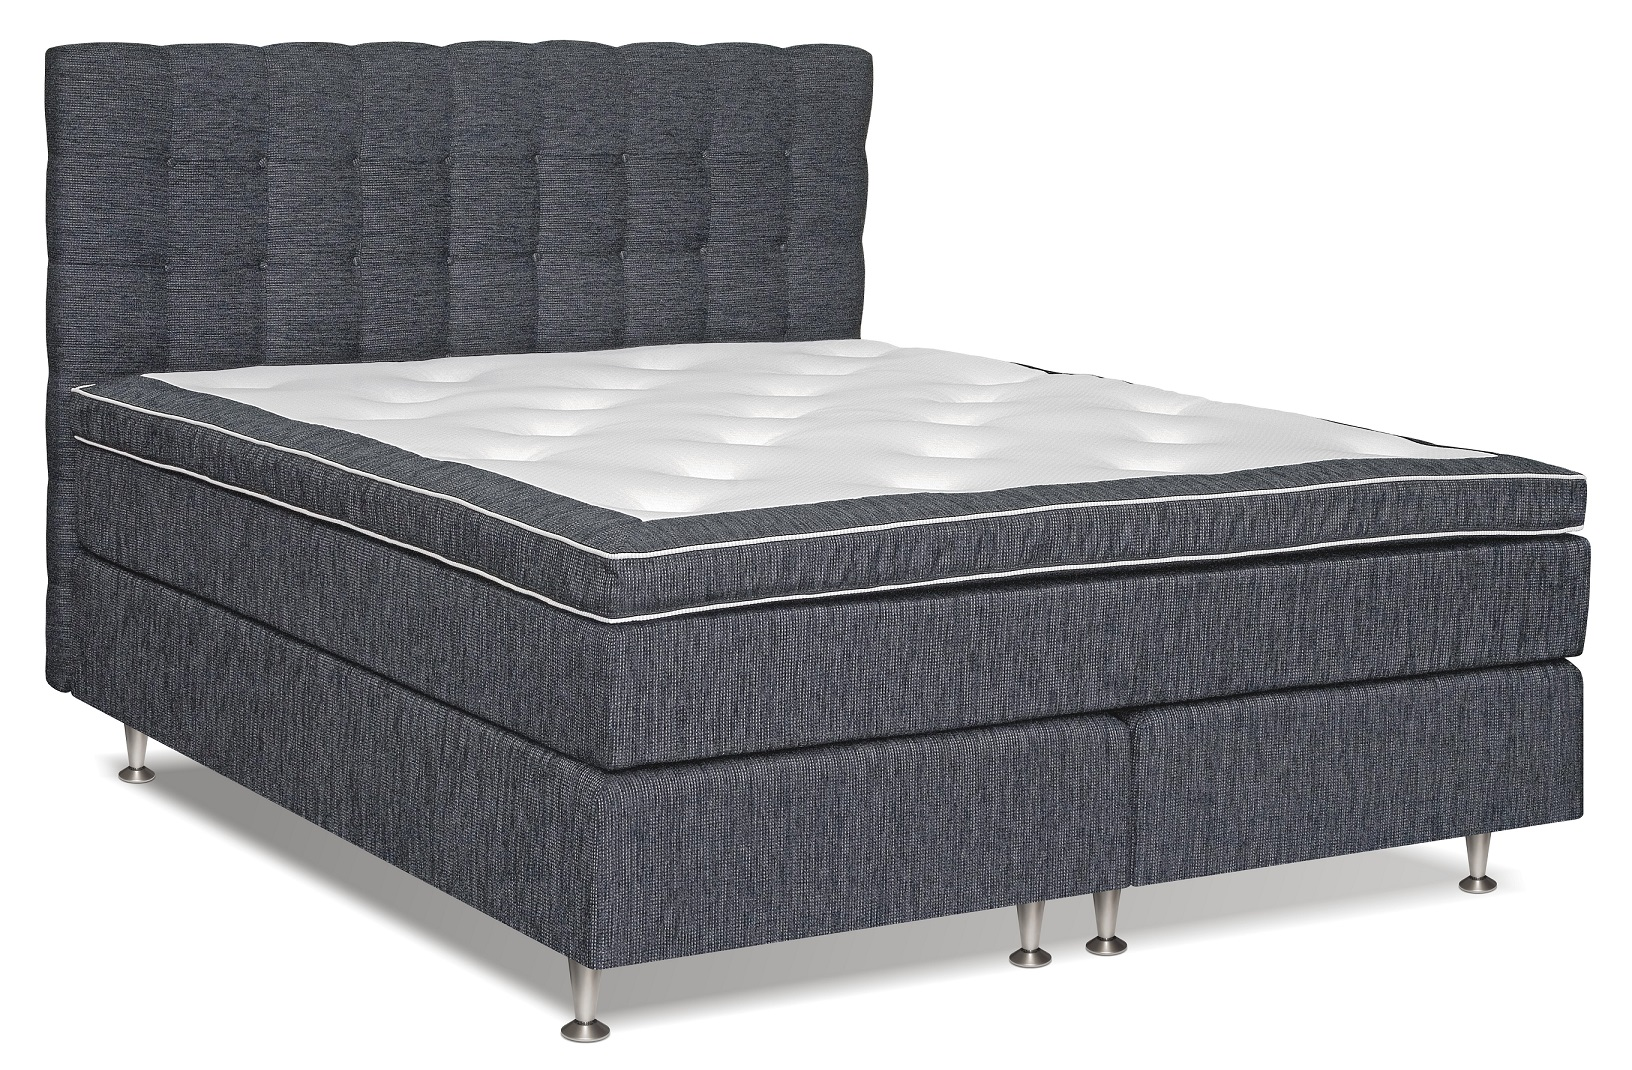 MULTI POCKET BED 1801